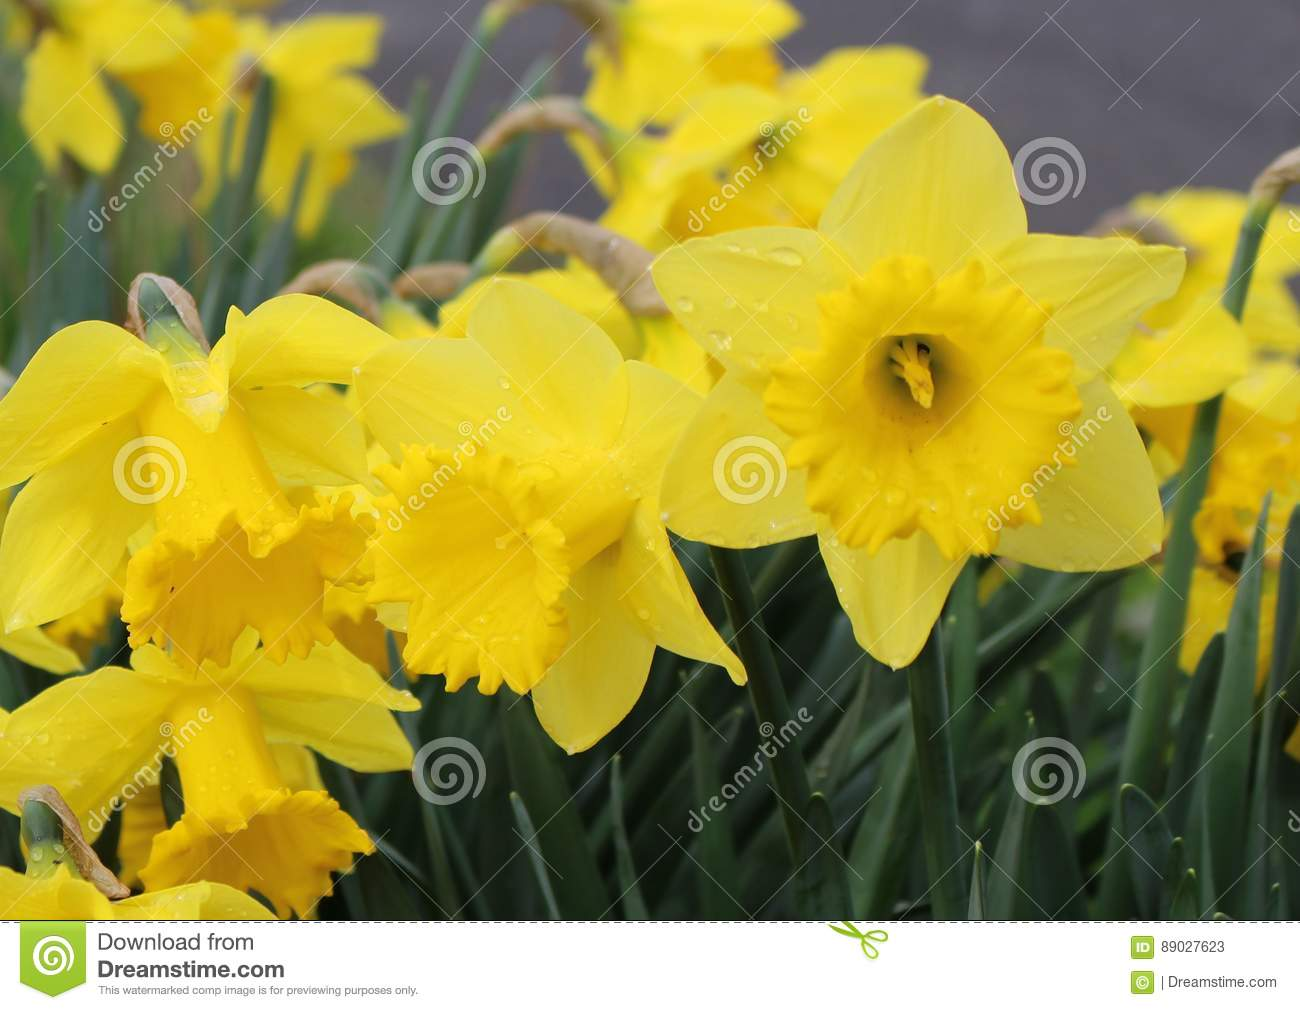 Dutch Master Daffodil Stock Image Image Of Flowers Strapshaped